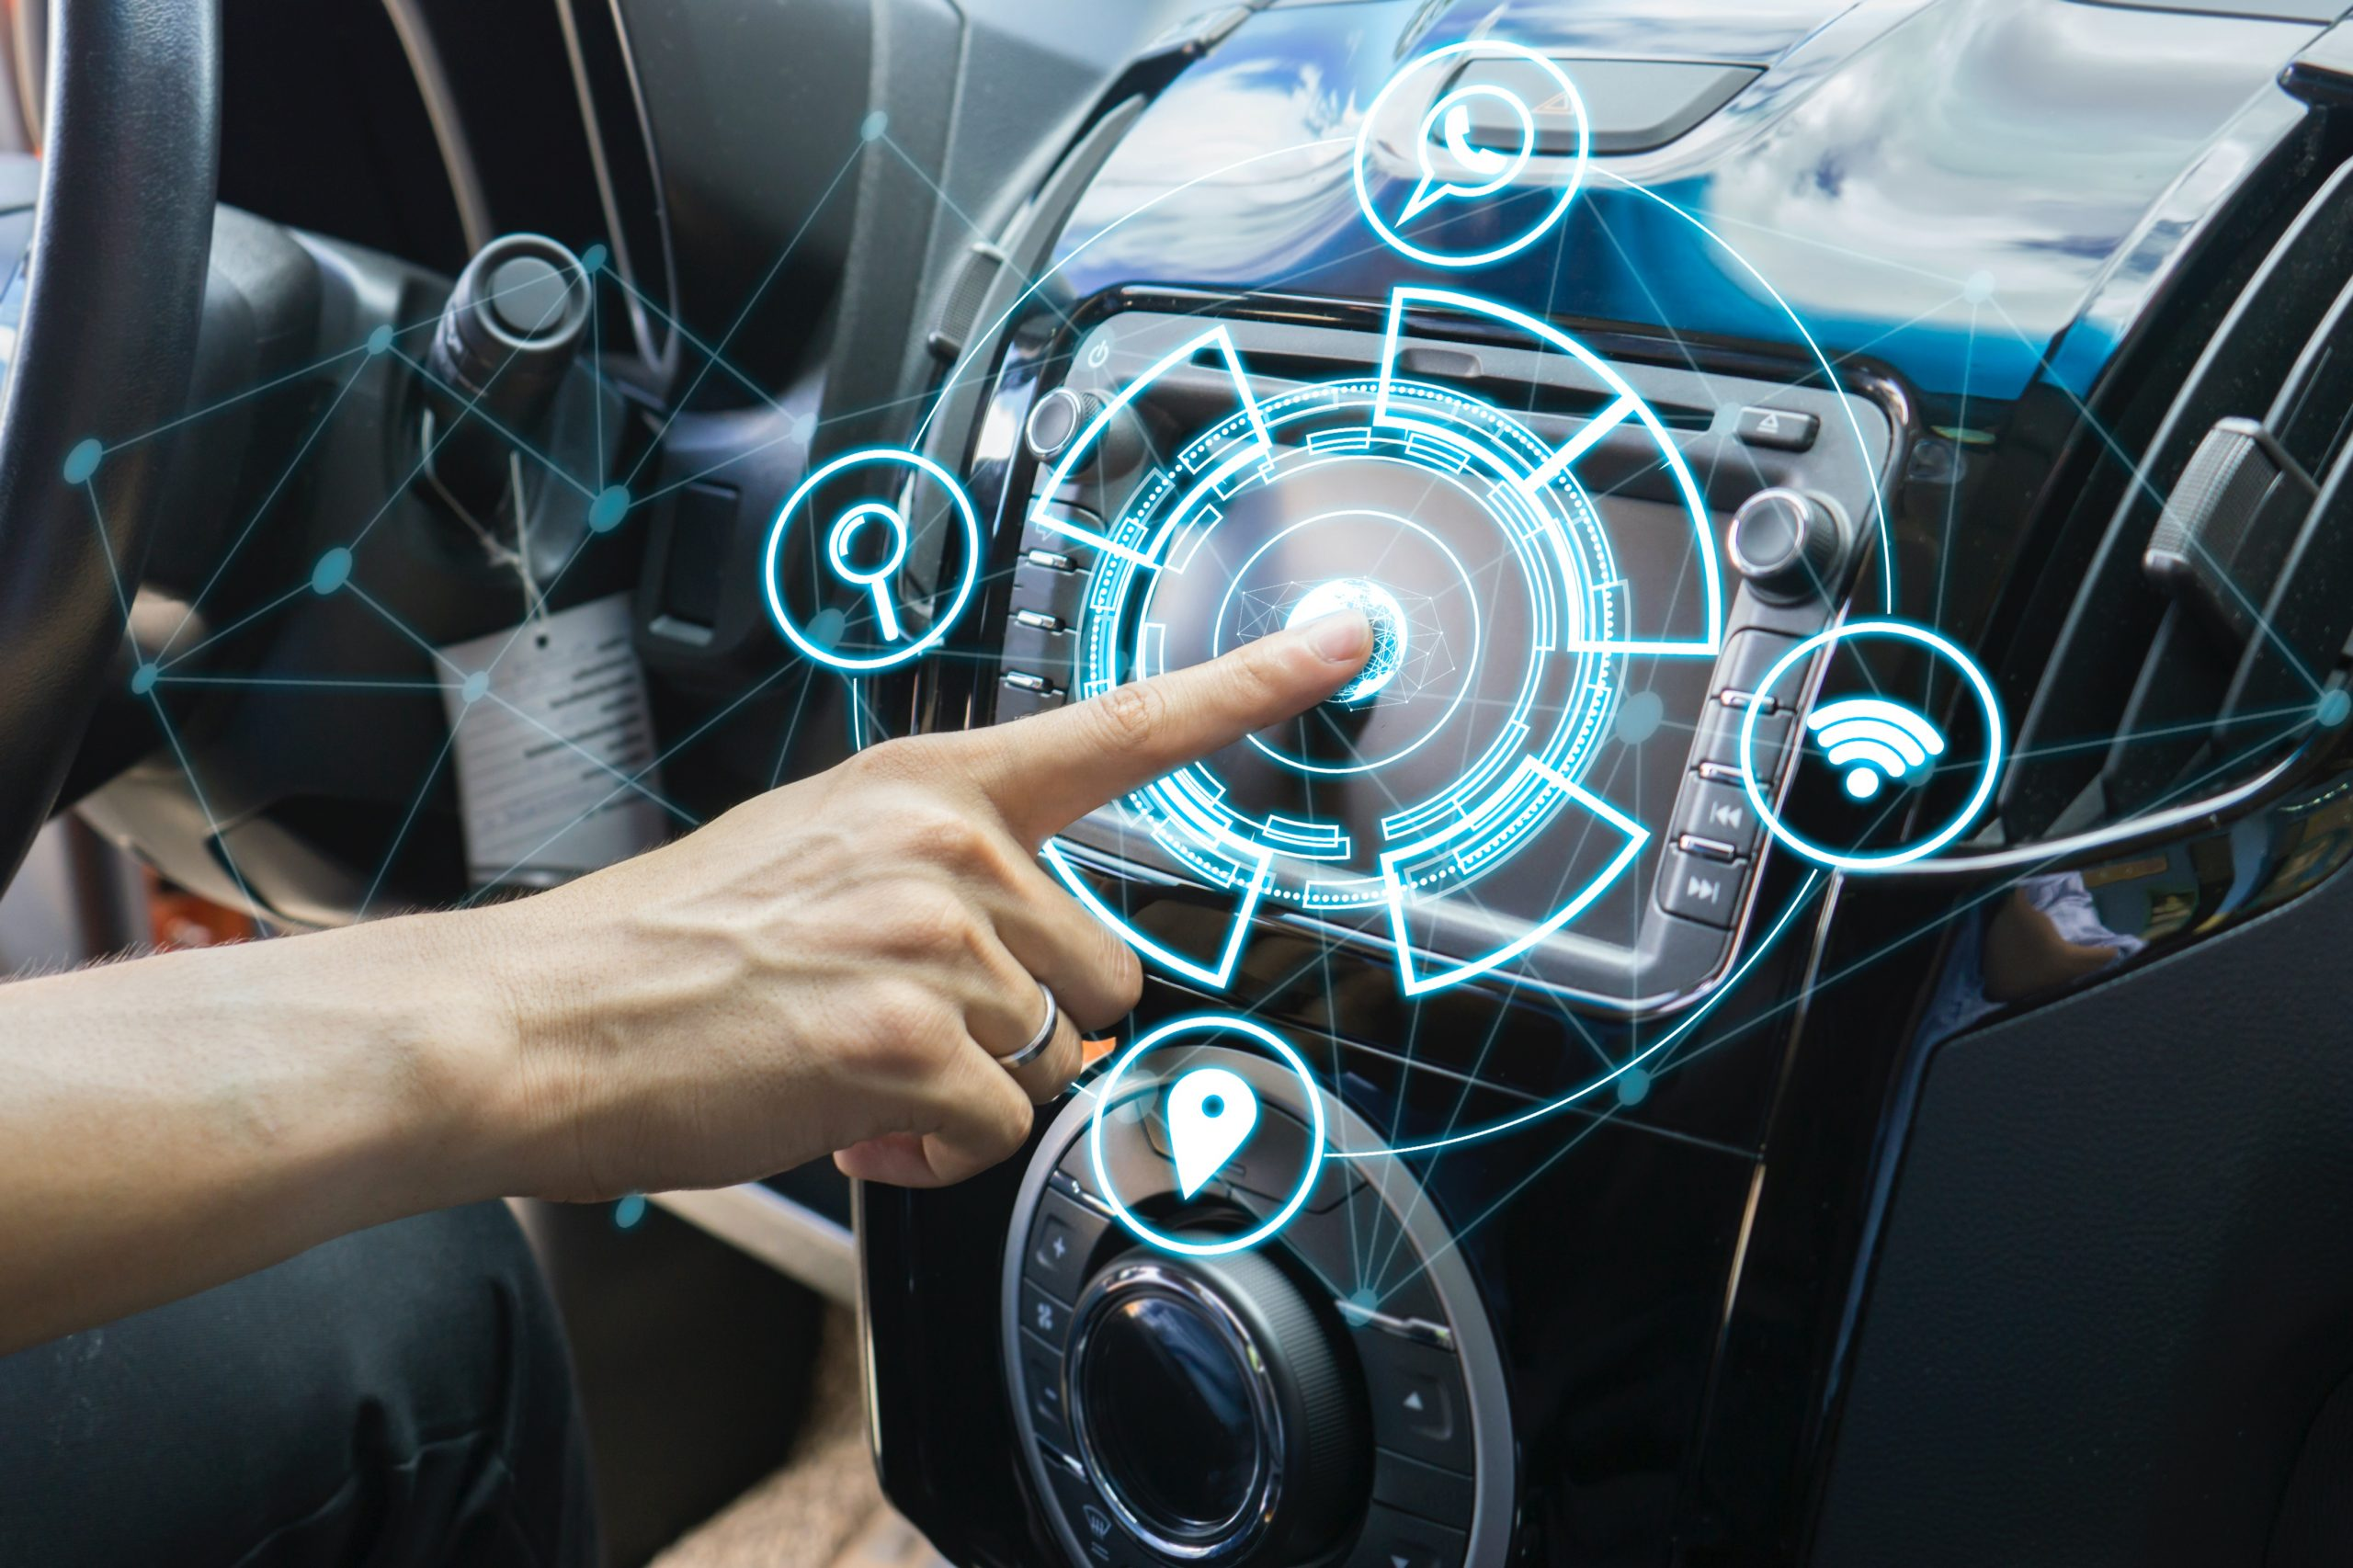 Engineering and validating system resilience in connected vehicles